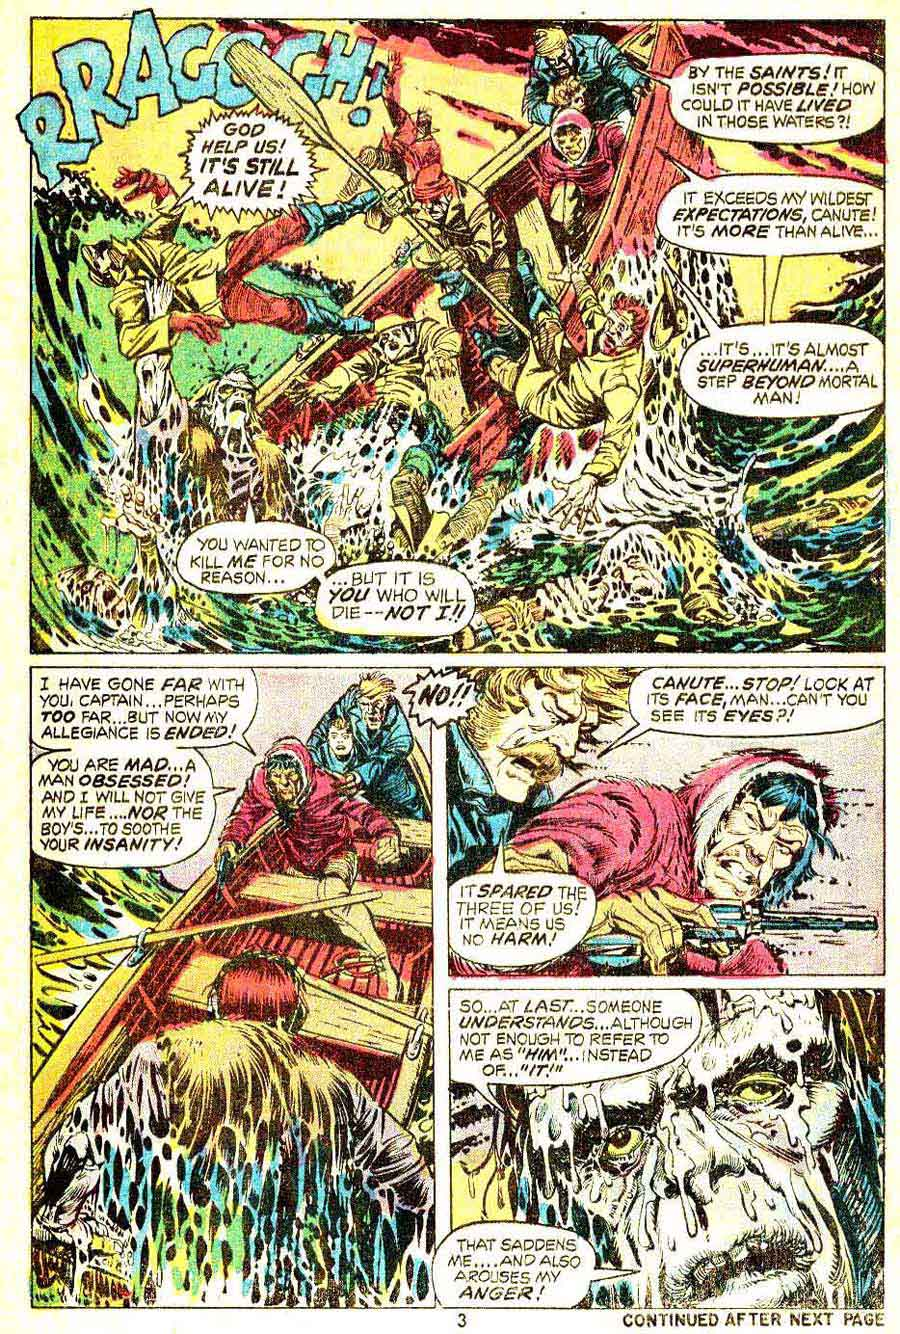 Frankenstein v2 #3 marvel comic book page art by Mike Ploog